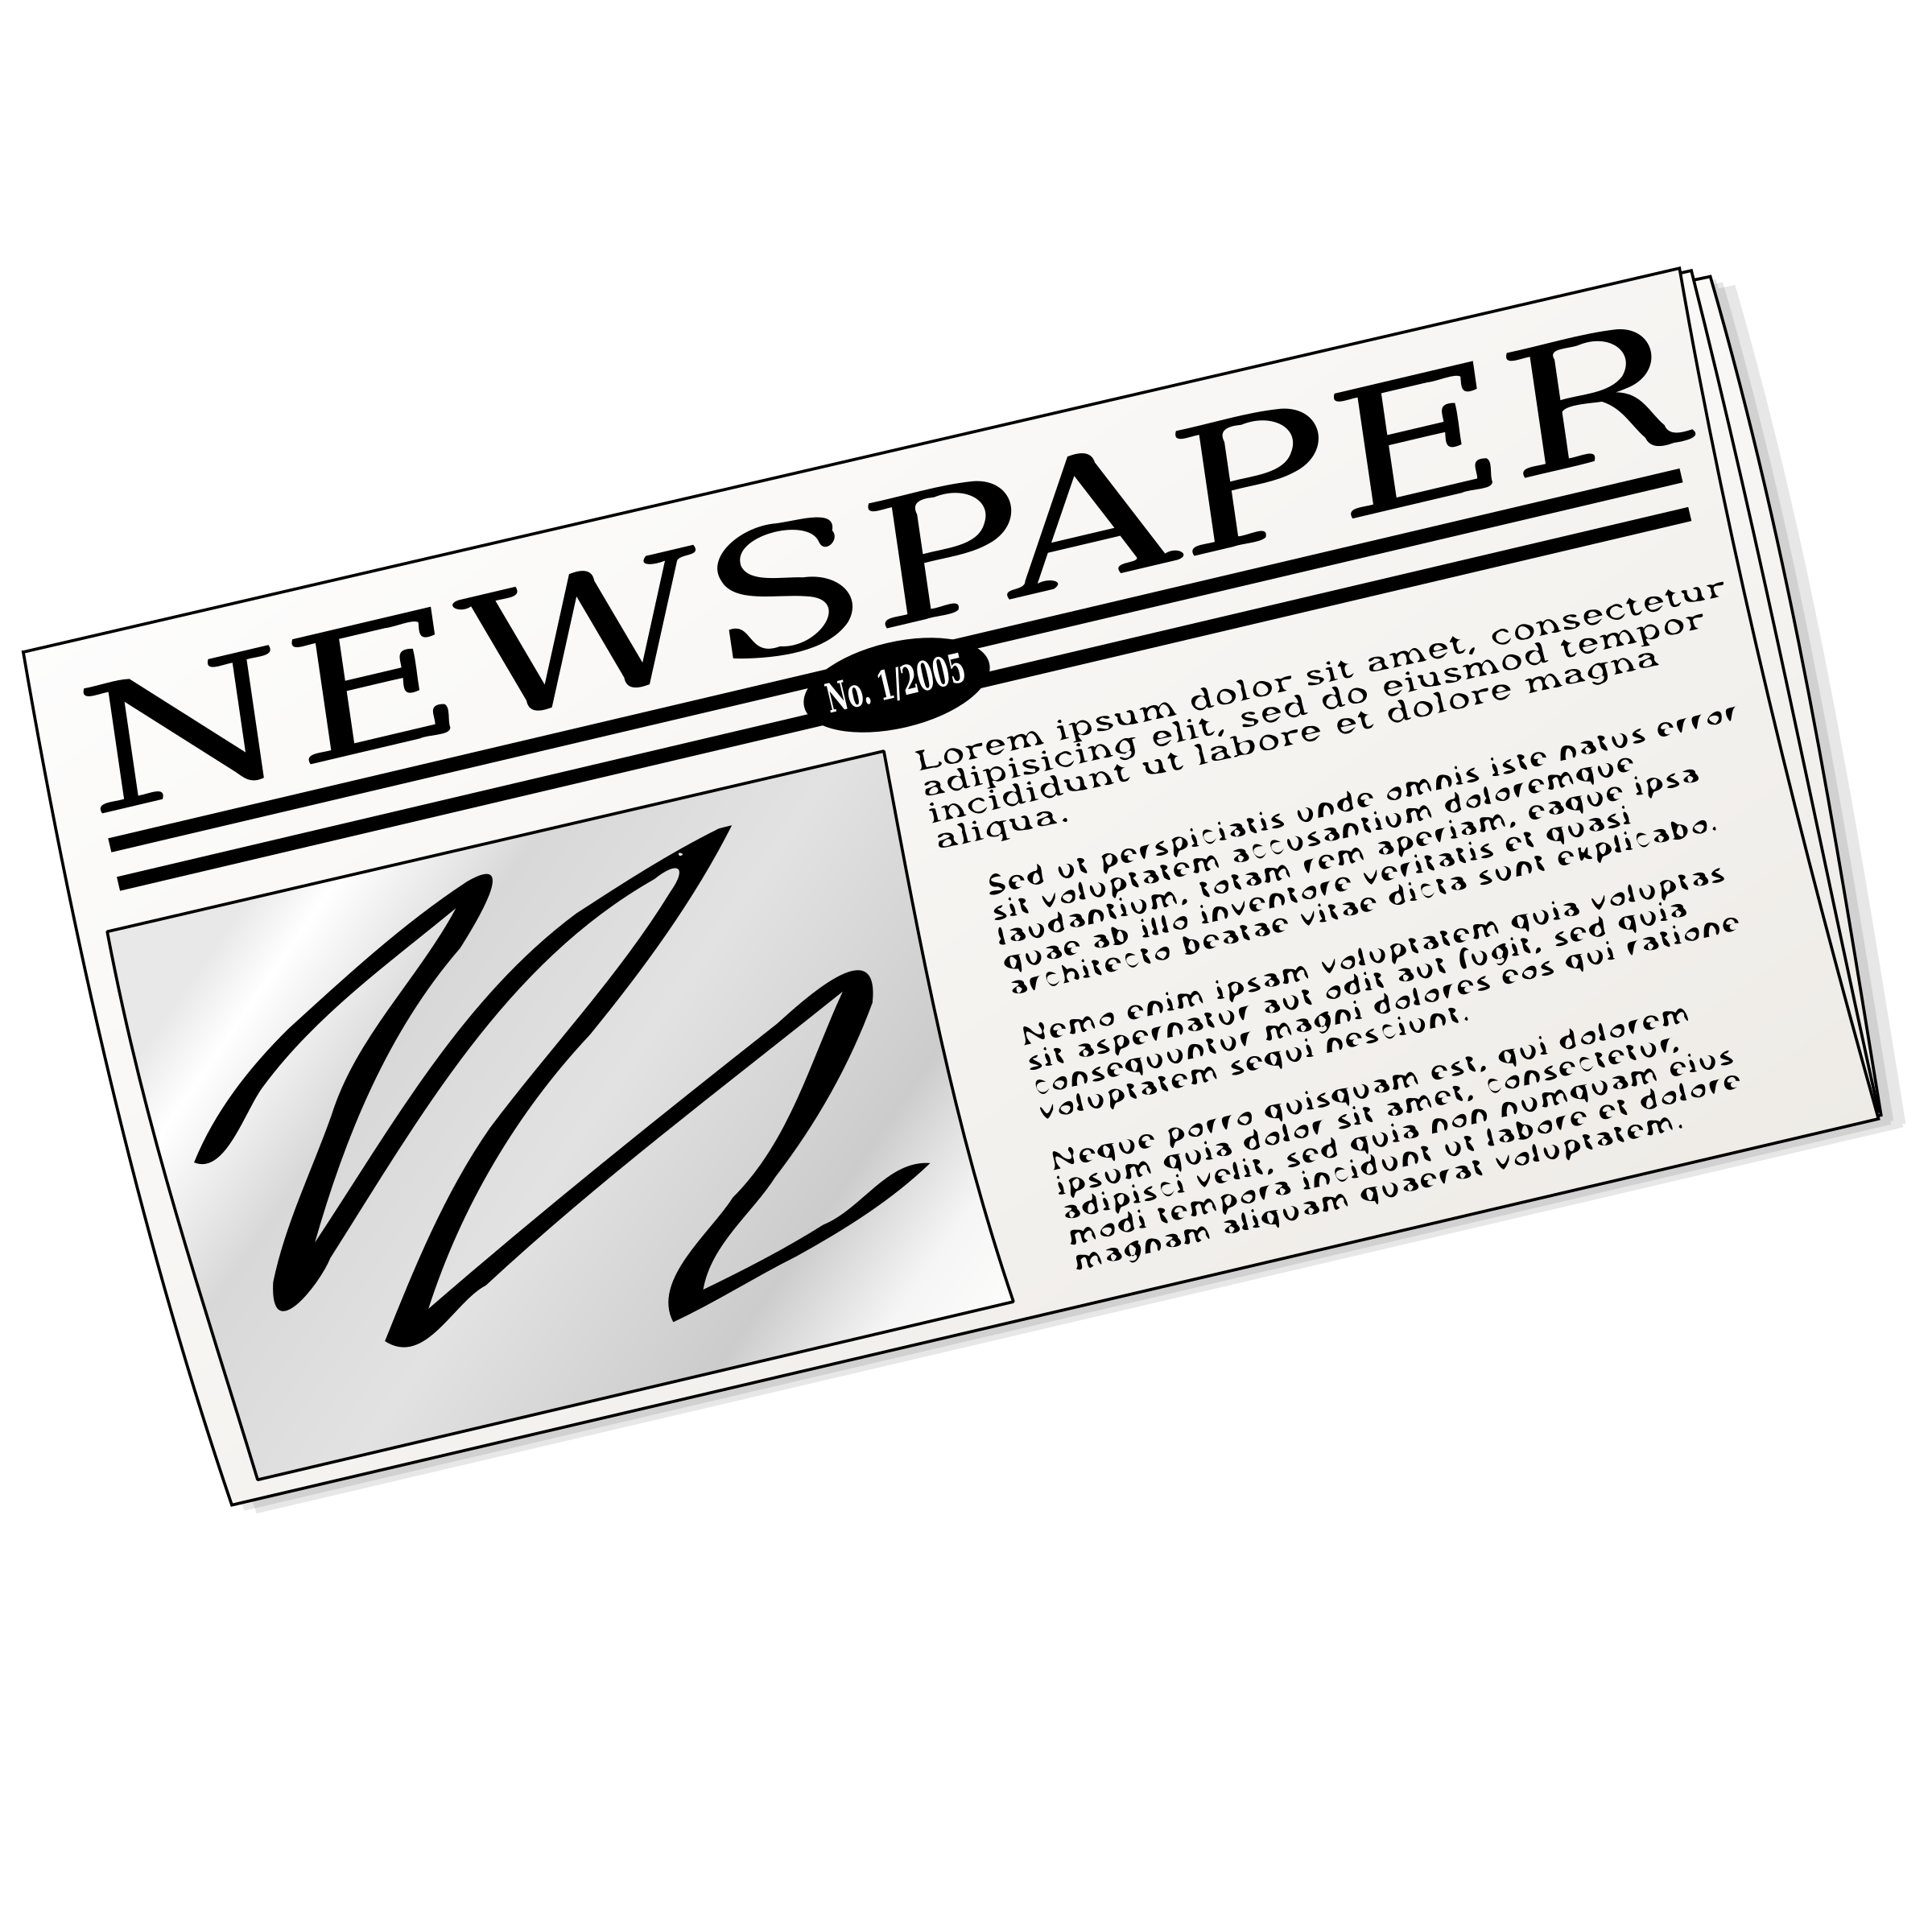 Free headline cliparts download. Newspaper clip powerpoint clip art transparent download